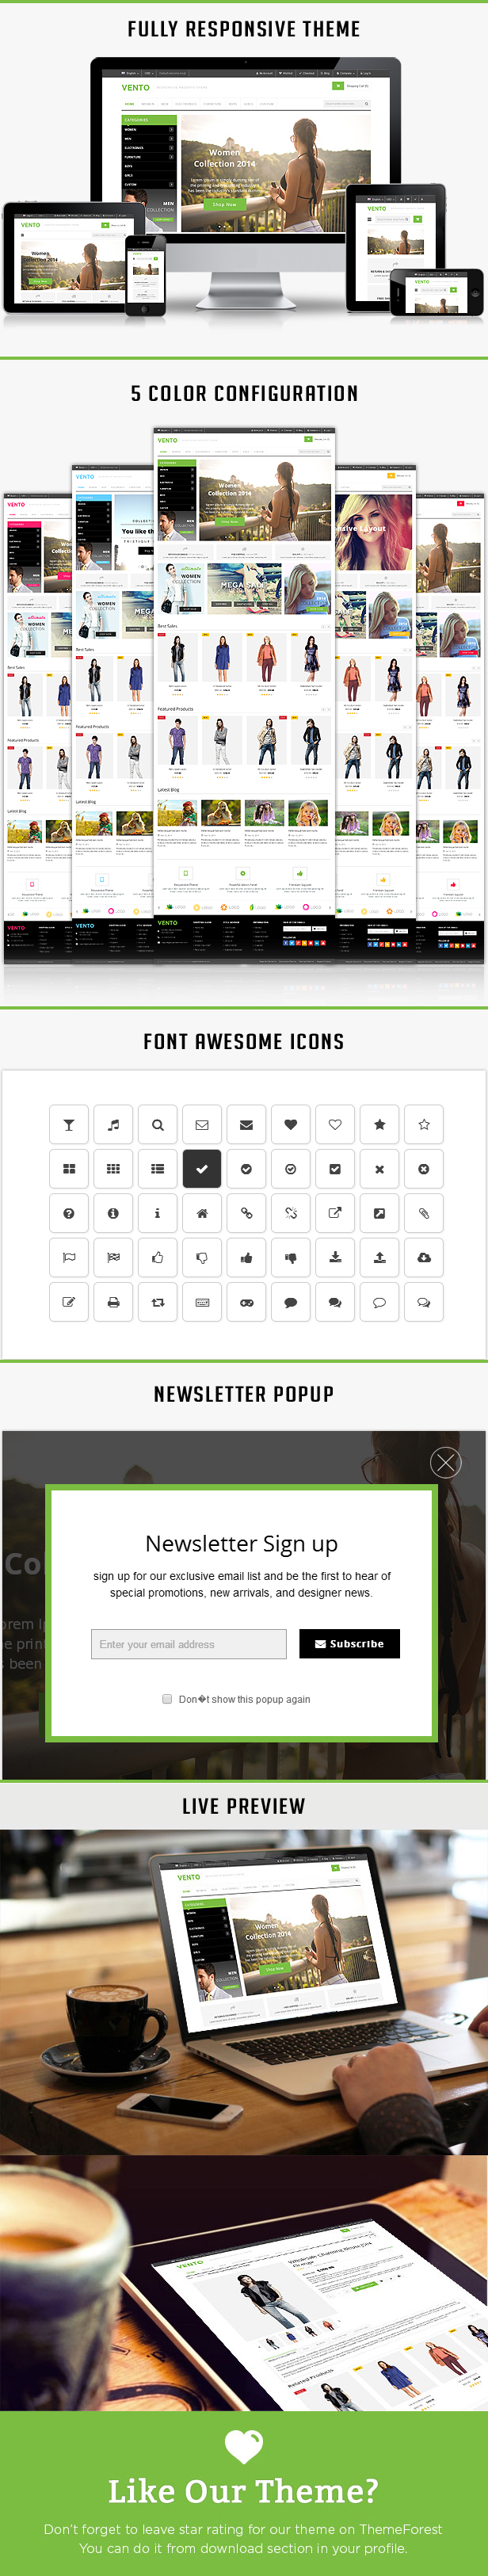 vento responsive html template